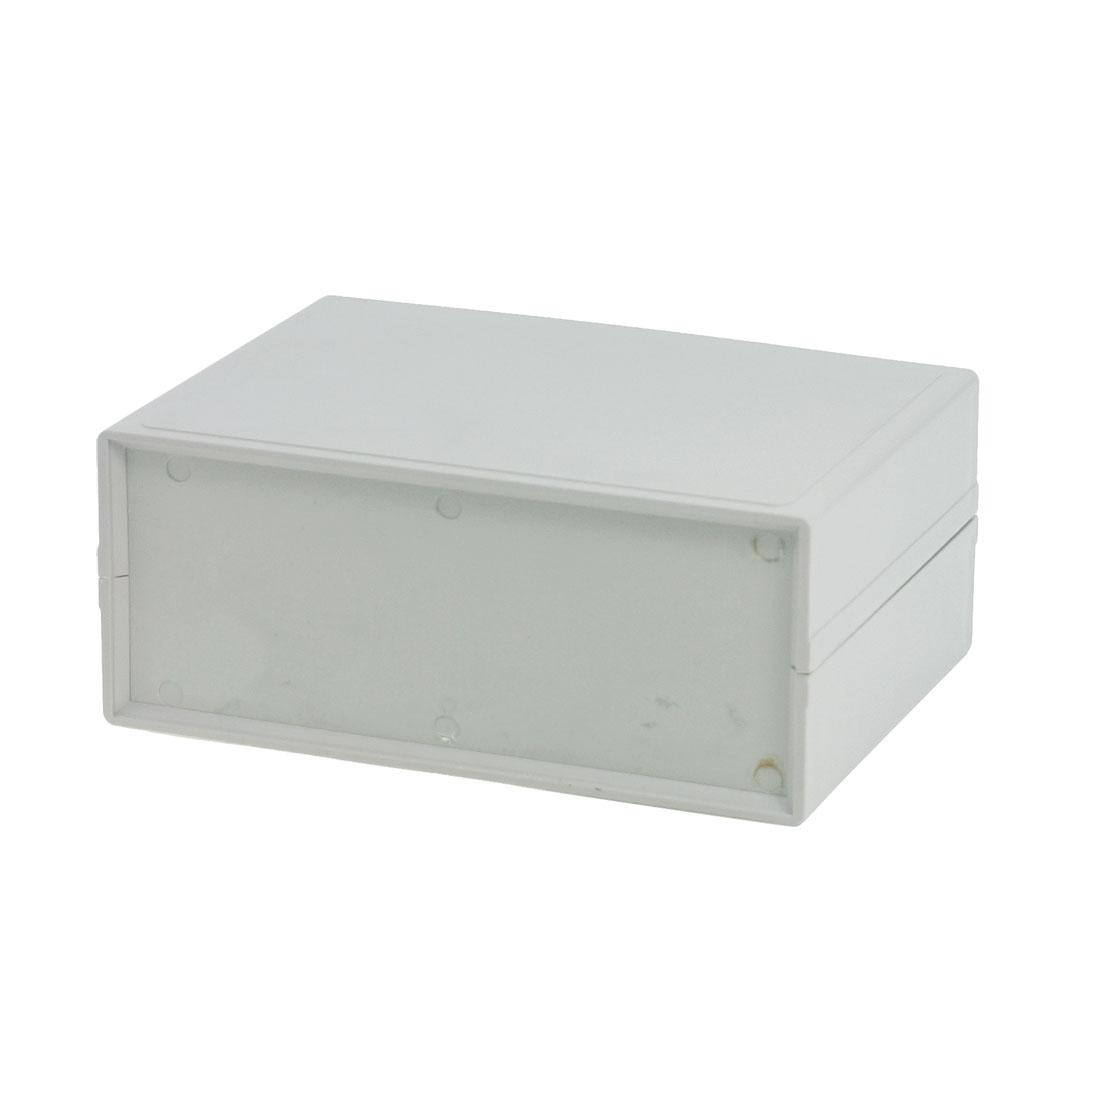 165mm x 120mm x 68mm Plastic Enclosure Case DIY Junction Box